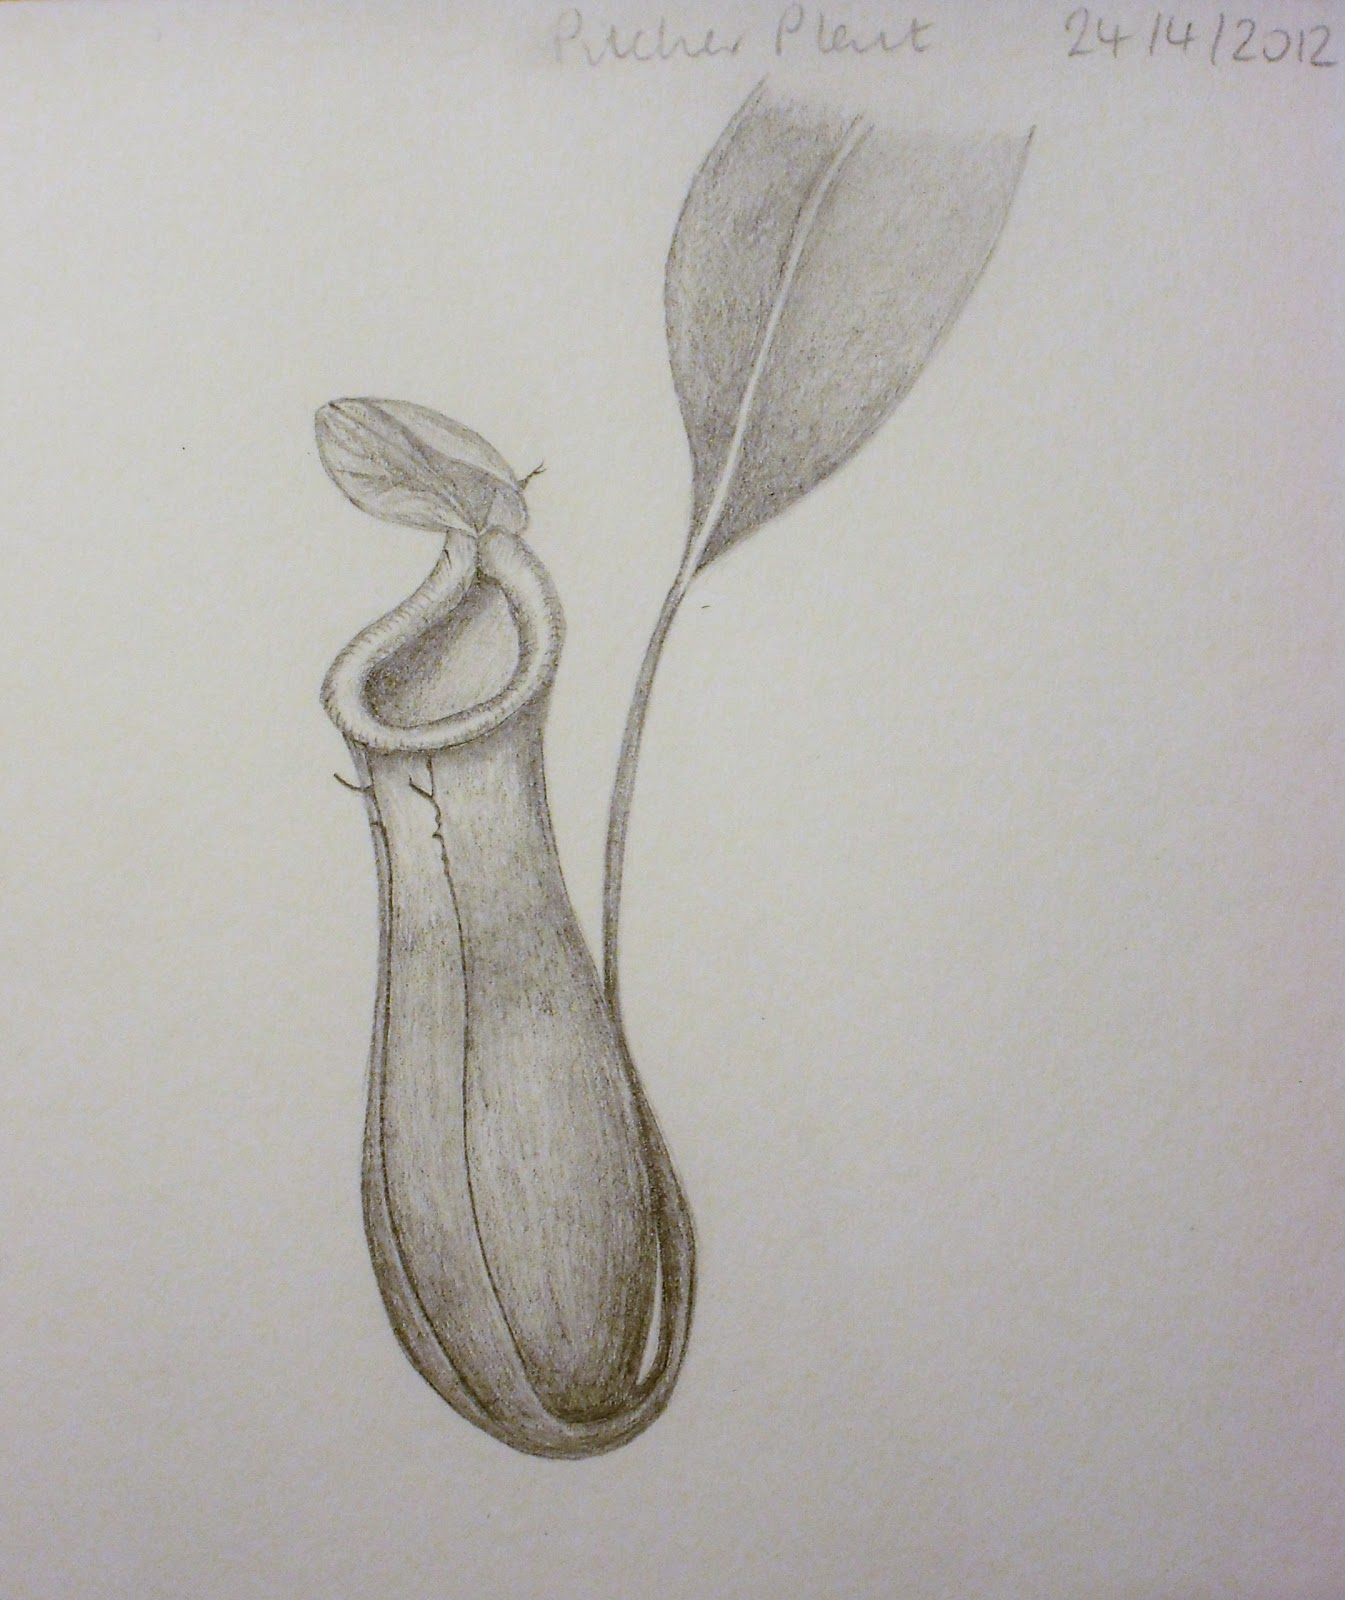 Pitcher plant drawing - photo#4